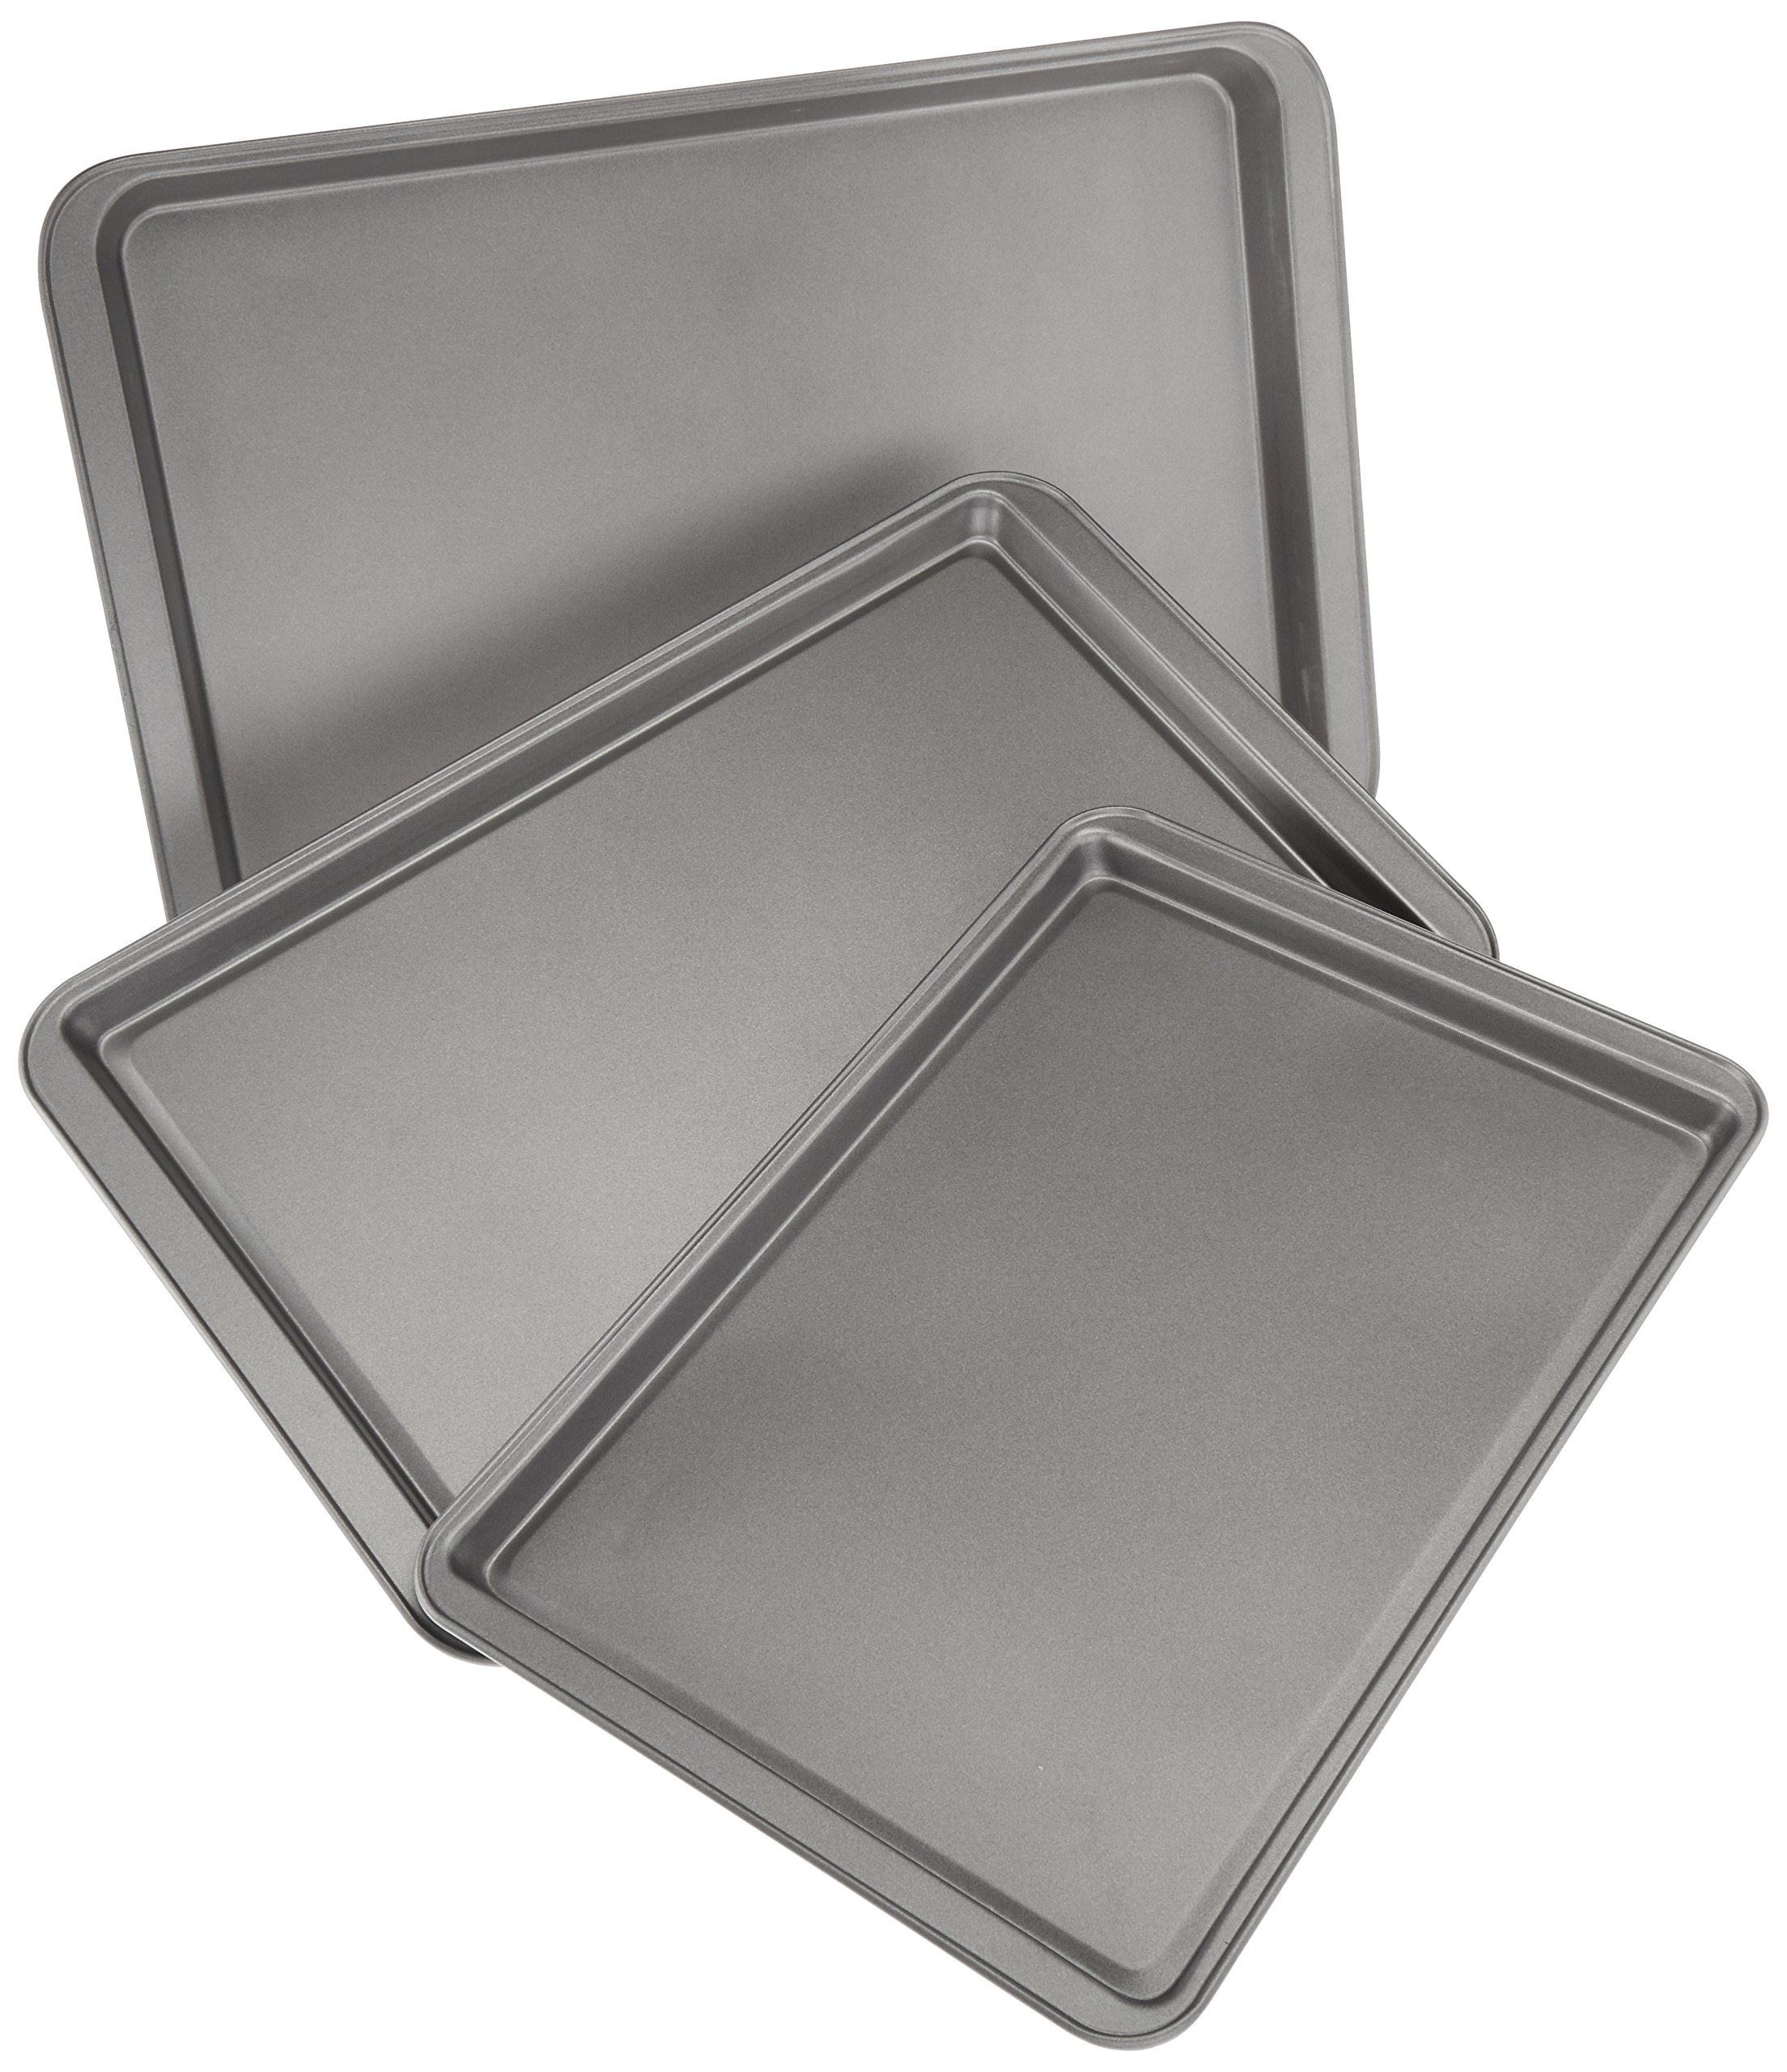 AmazonBasics 3-Piece Nonstick Baking Sheet Set by AmazonBasics